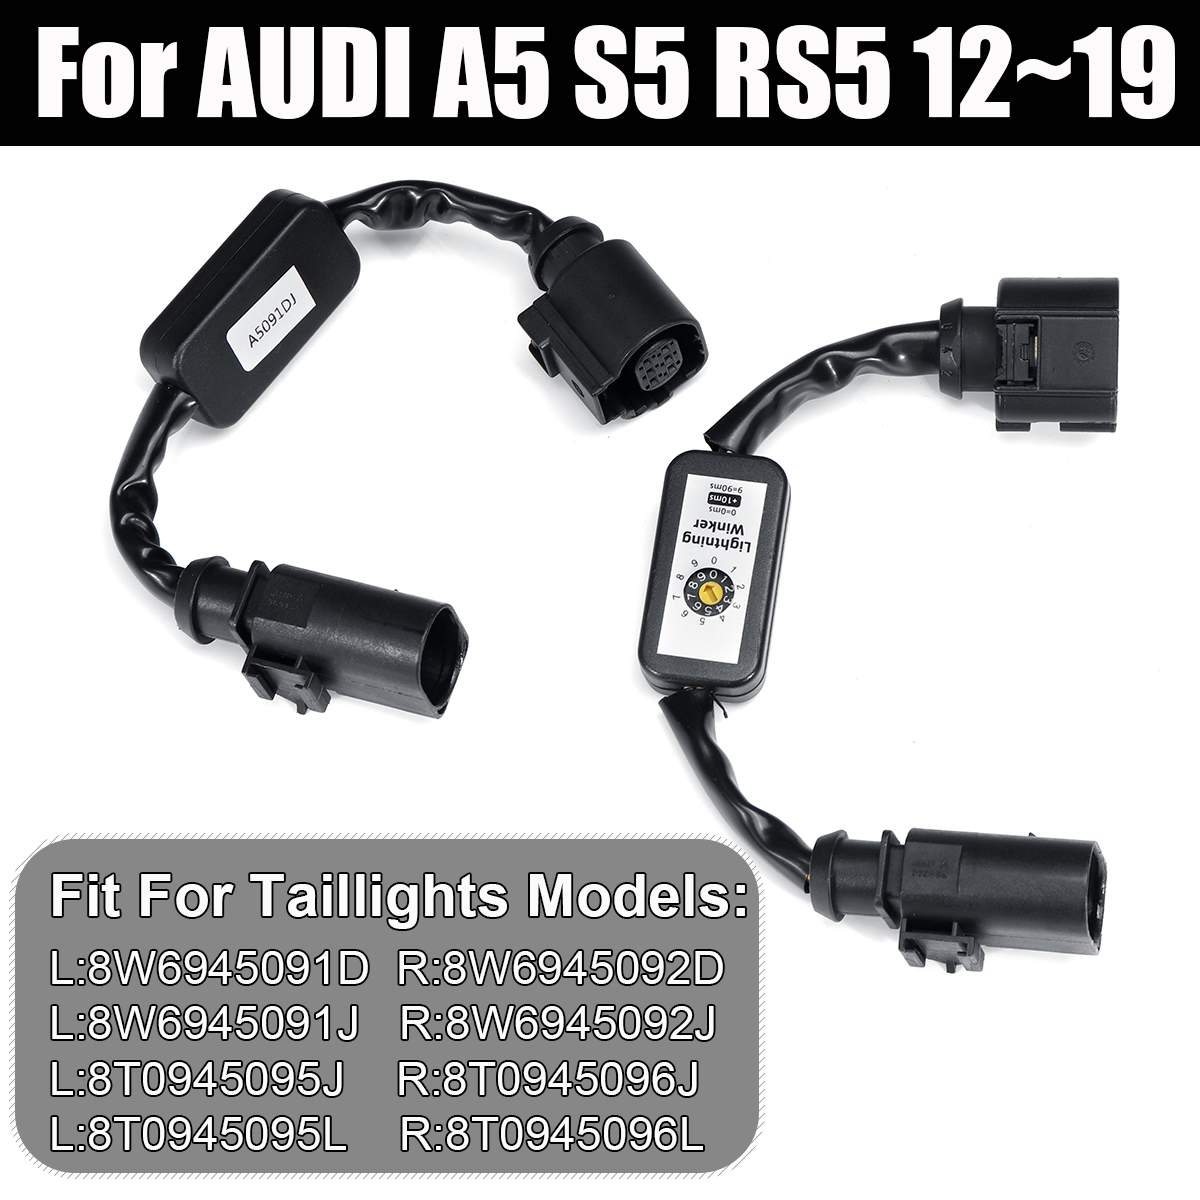 NEW 2 Pcs Black Dynamic Turn Signal Indicator LED Taillight Add on Module Cable Wire Harness For AUDI A5 S5 RS5 12~19 Tail Light